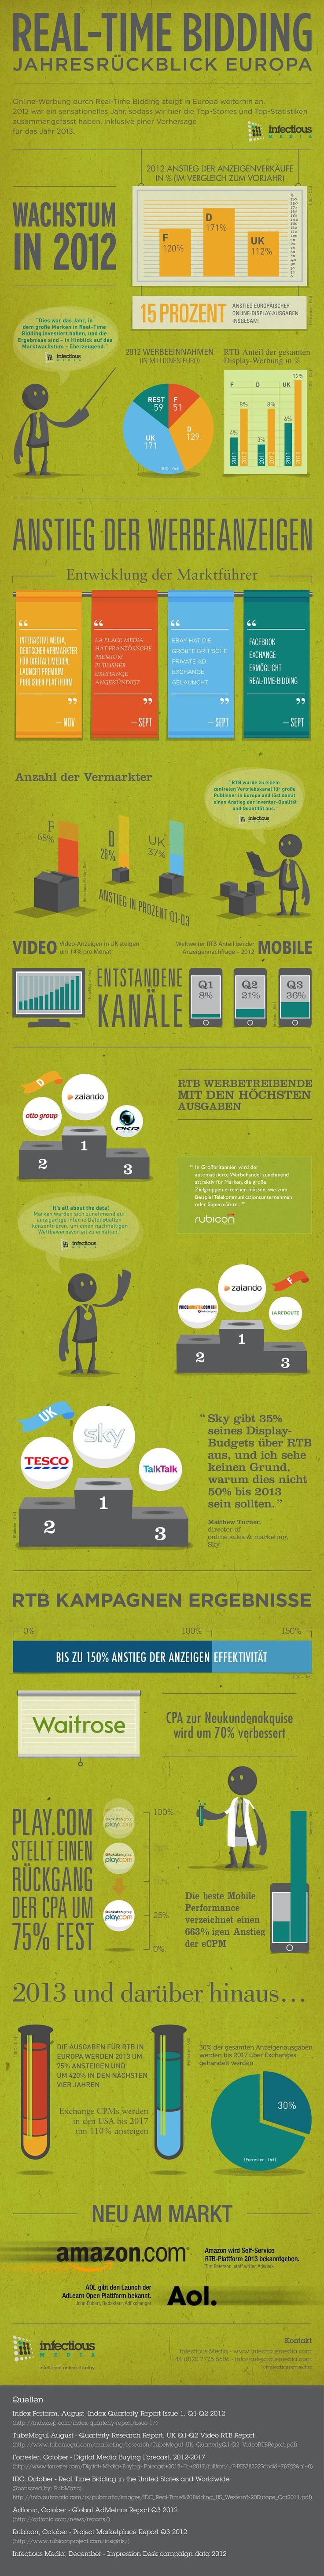 8 best RTB (Real Time Bidding) images on Pinterest